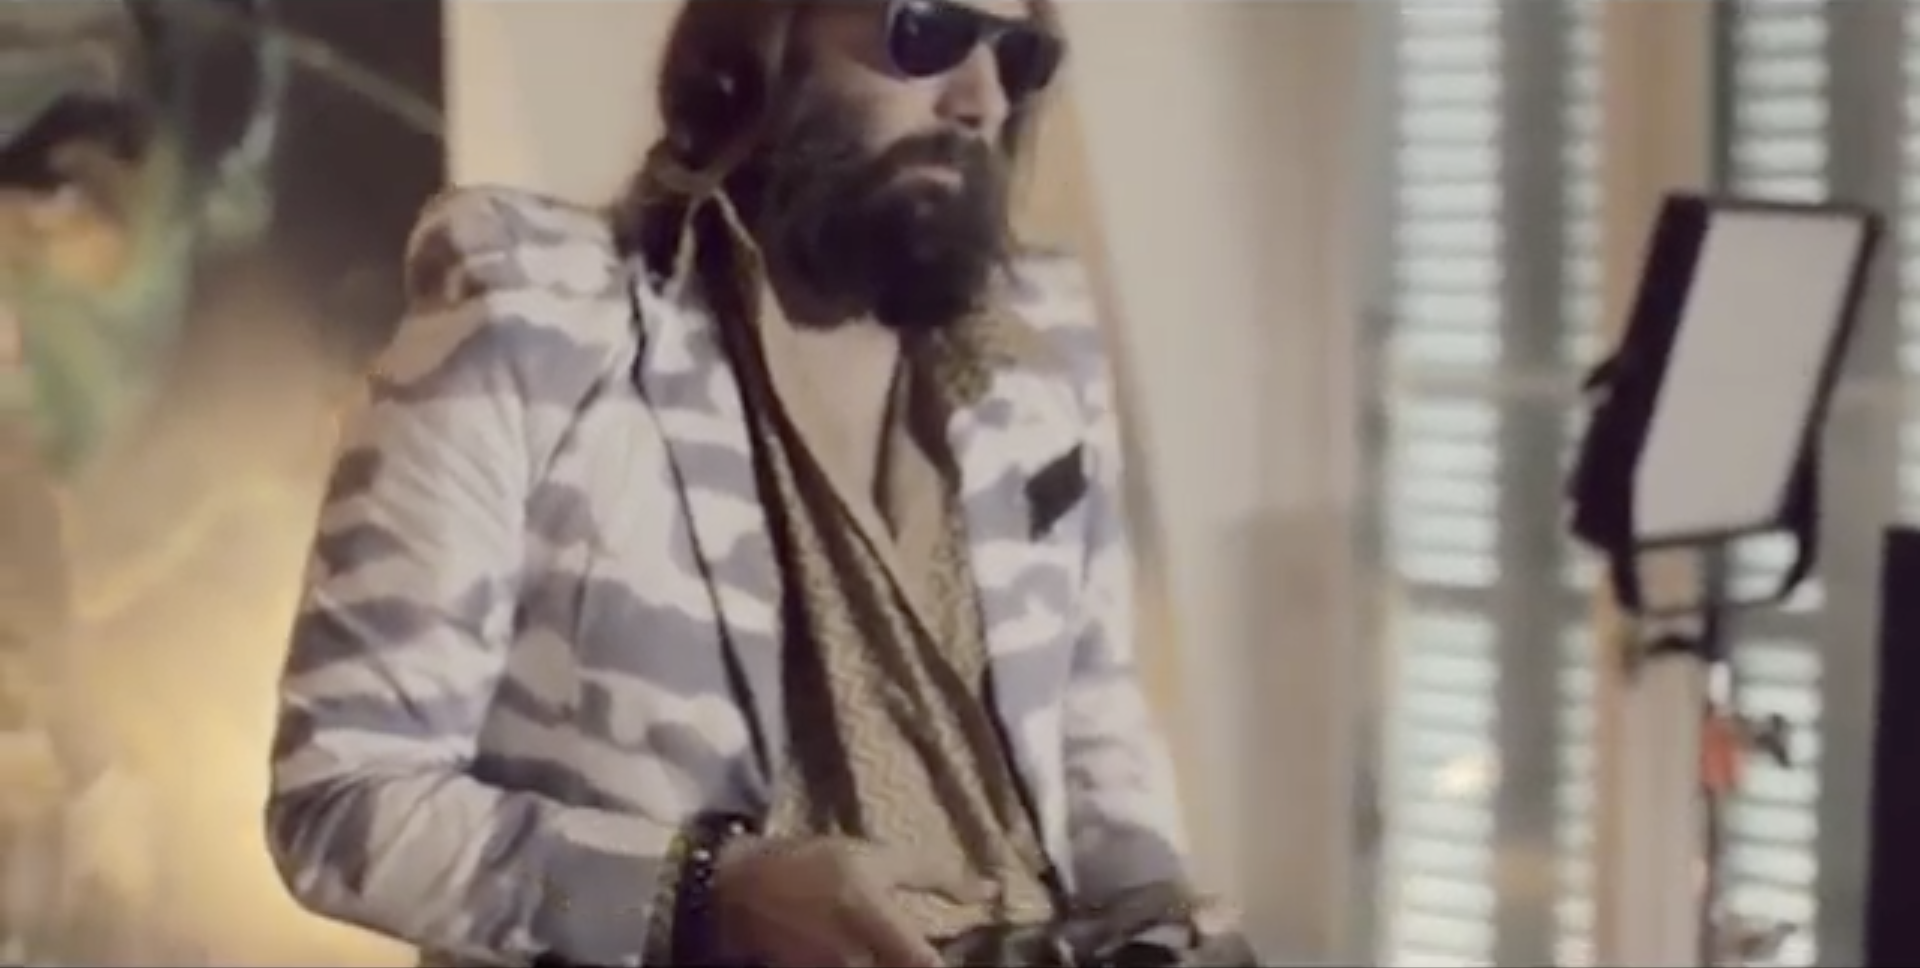 Sébastien Tellier: King of Blue   :    Mock-interview-turned-music-video with the French lounge lothario and master of the love song, Sébastien Tellier. The sensuous and surreal dreamscape was directed by fashion photographer Guy Aroch.  Producer: Jerry Stafford. Dir. Guy Aroch.